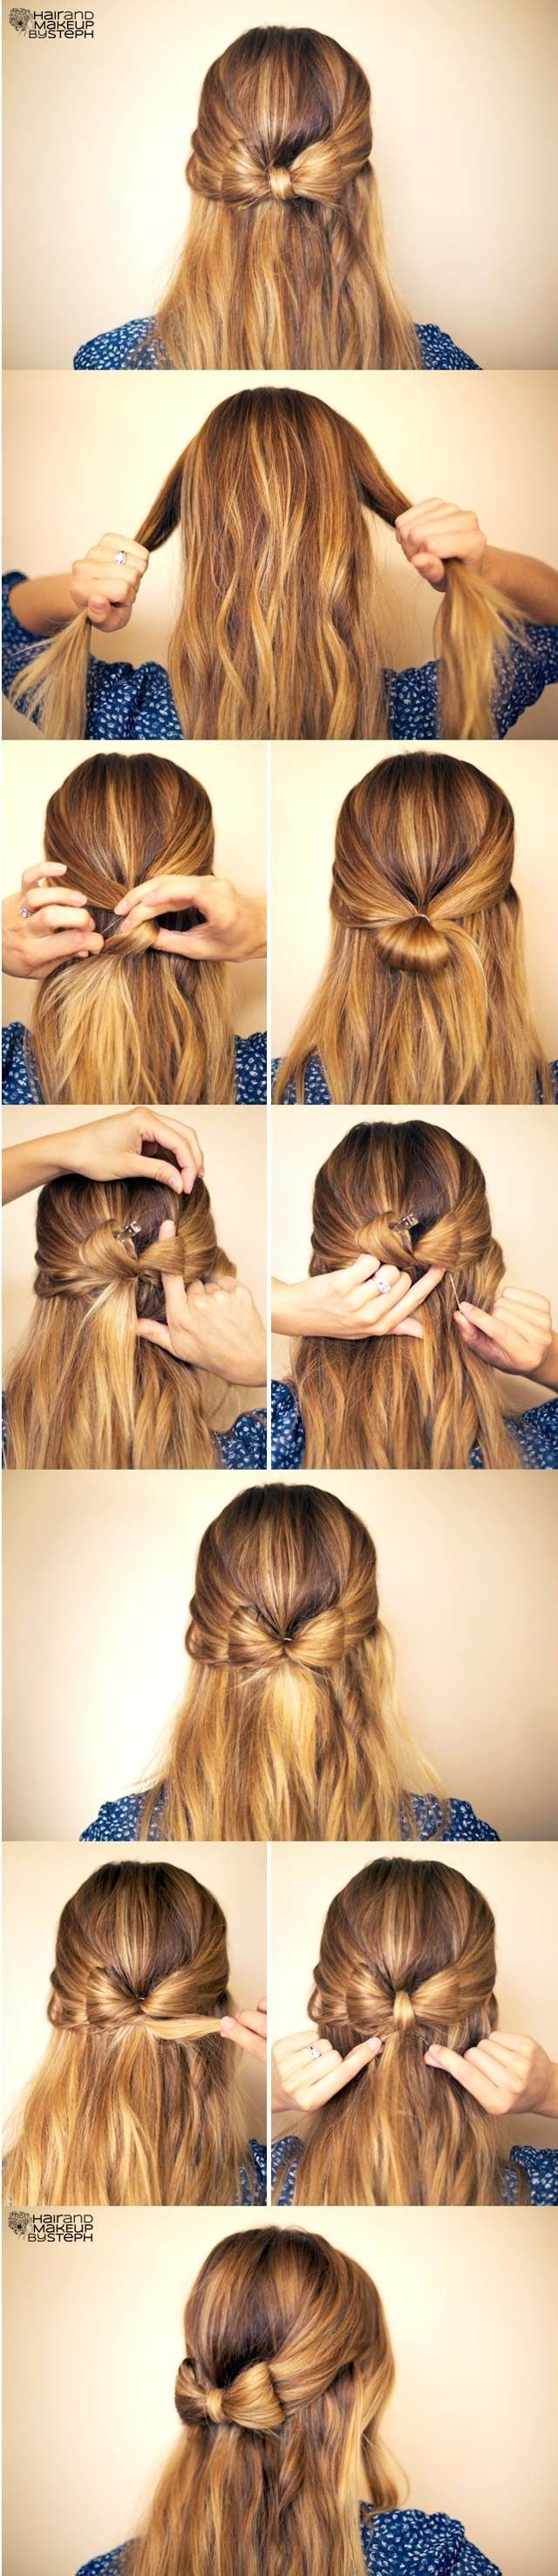 15 Cute hairstyles: Step-by-Step Hairstyles for Long Hair | PoPular